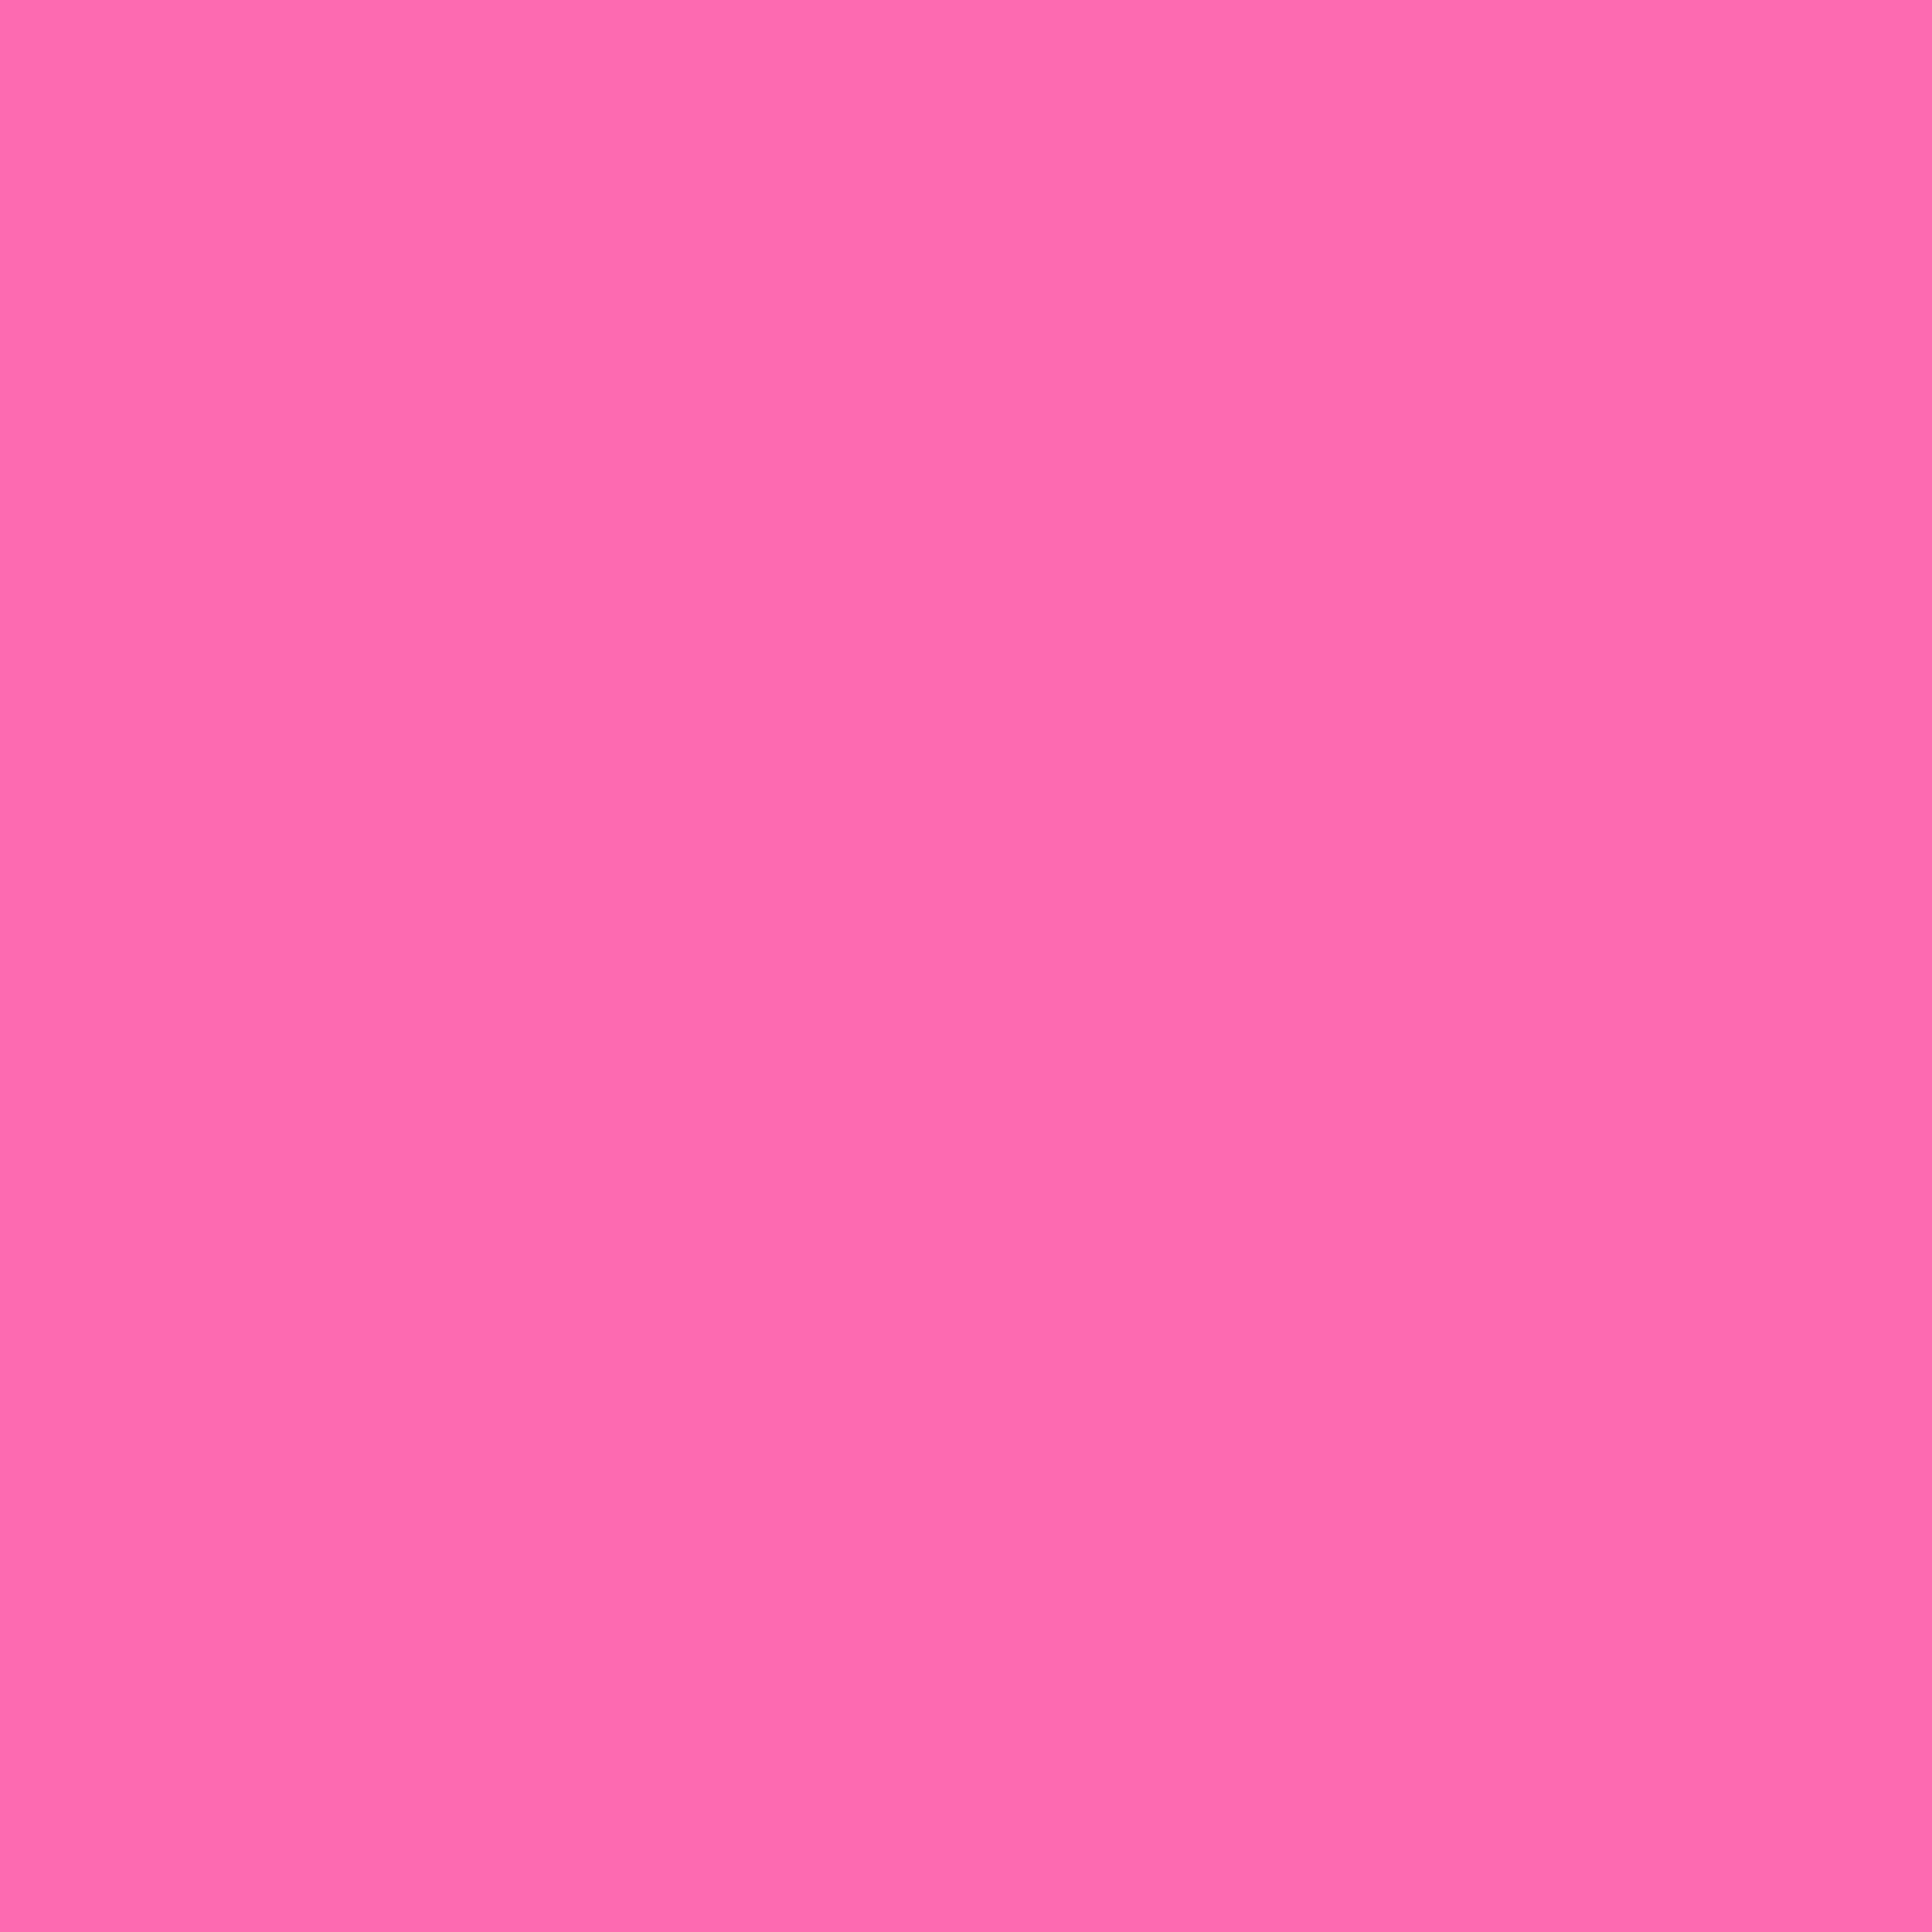 Hot Pink Color Background Images Pictures   Becuo 2048x2048